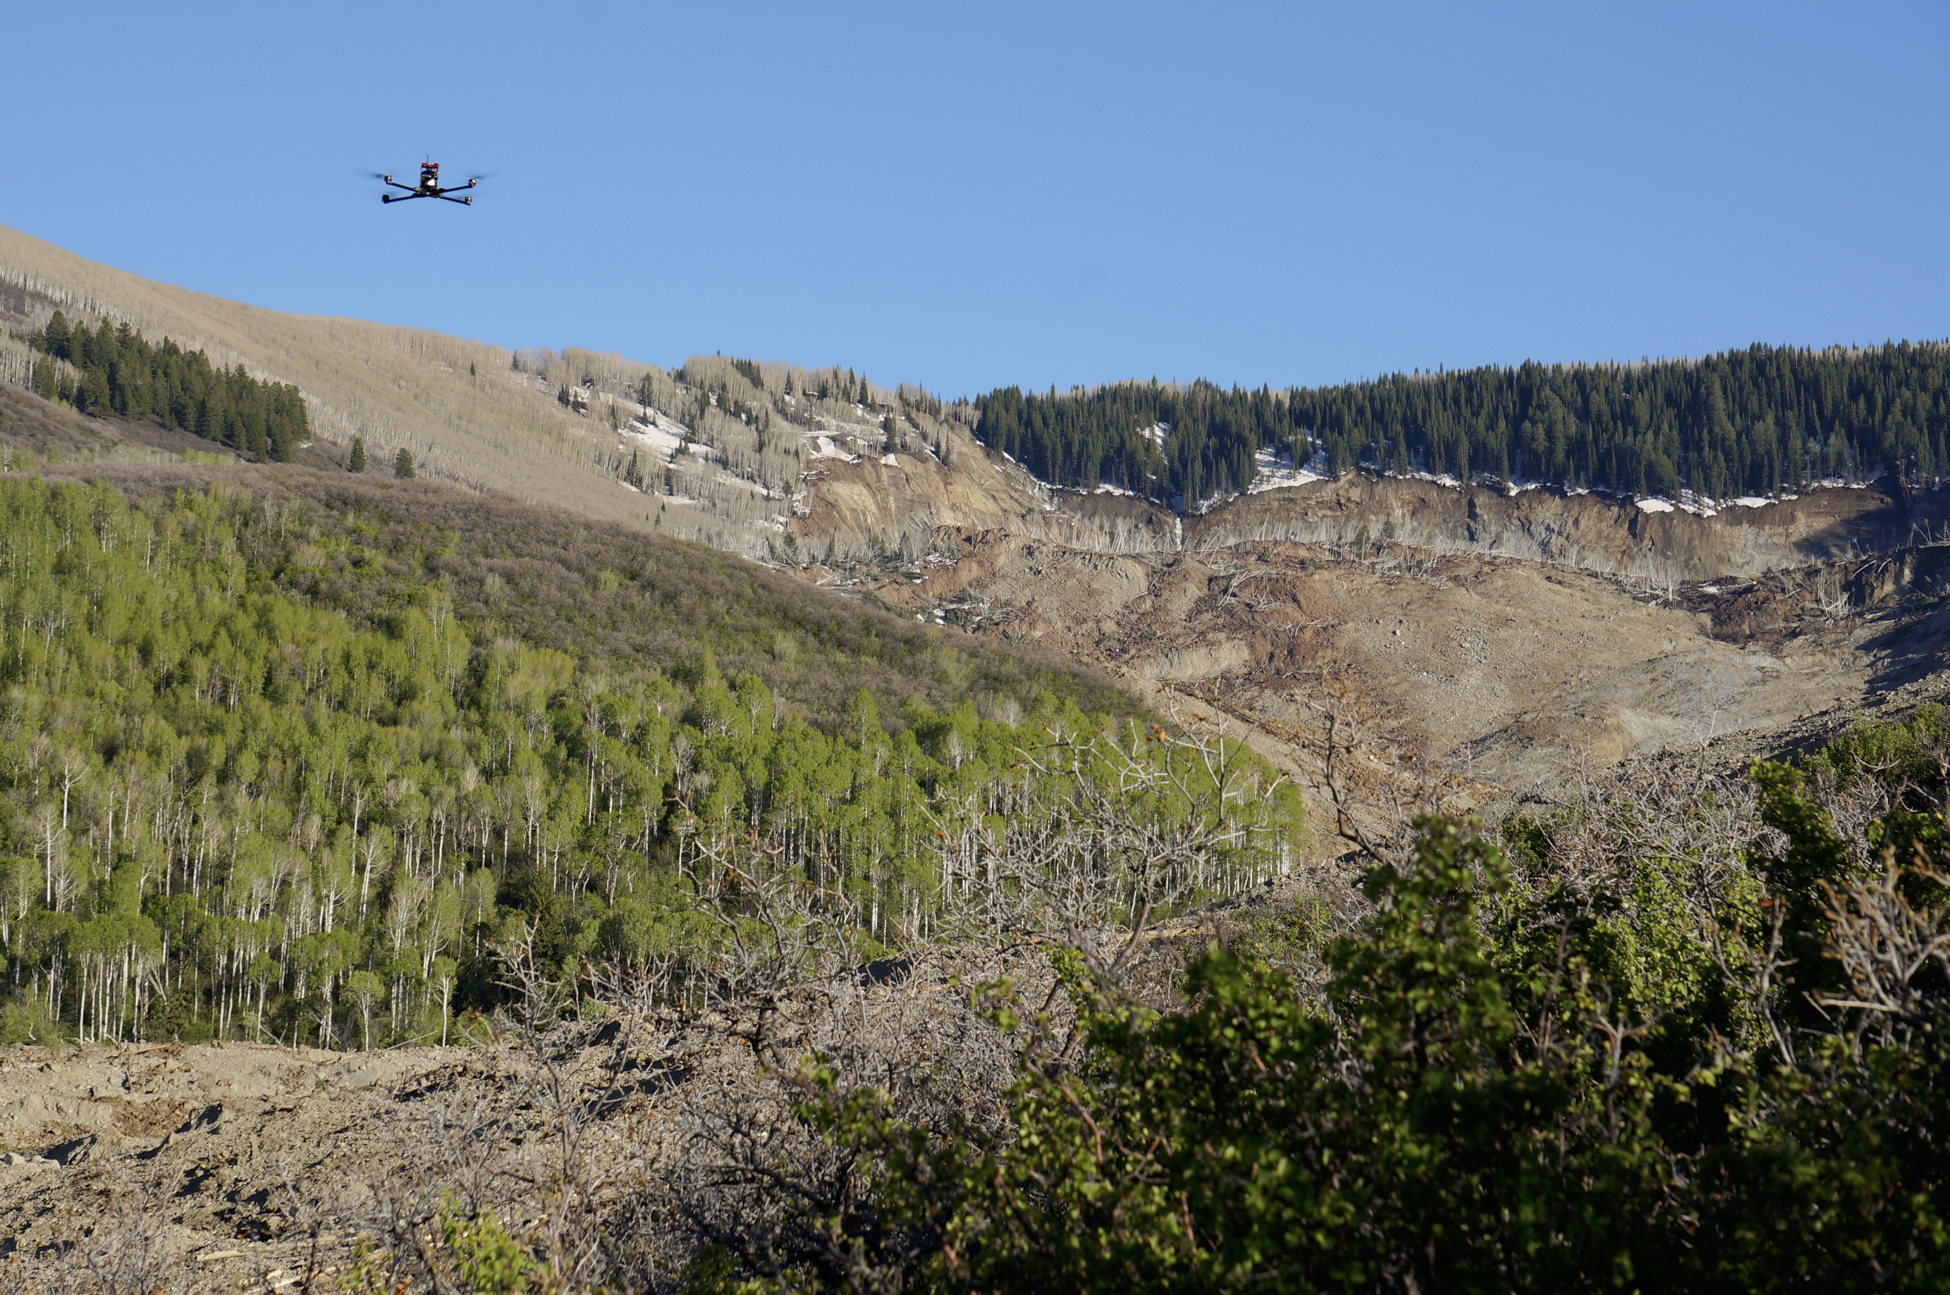 UAS flying over the West Salt Creek landslide on May 26, 2014, one day after the landslide occurred. The view is to the south, looking toward the landslide headscarp. Credit: Sheriff's Office, Mesa County, Colorado.